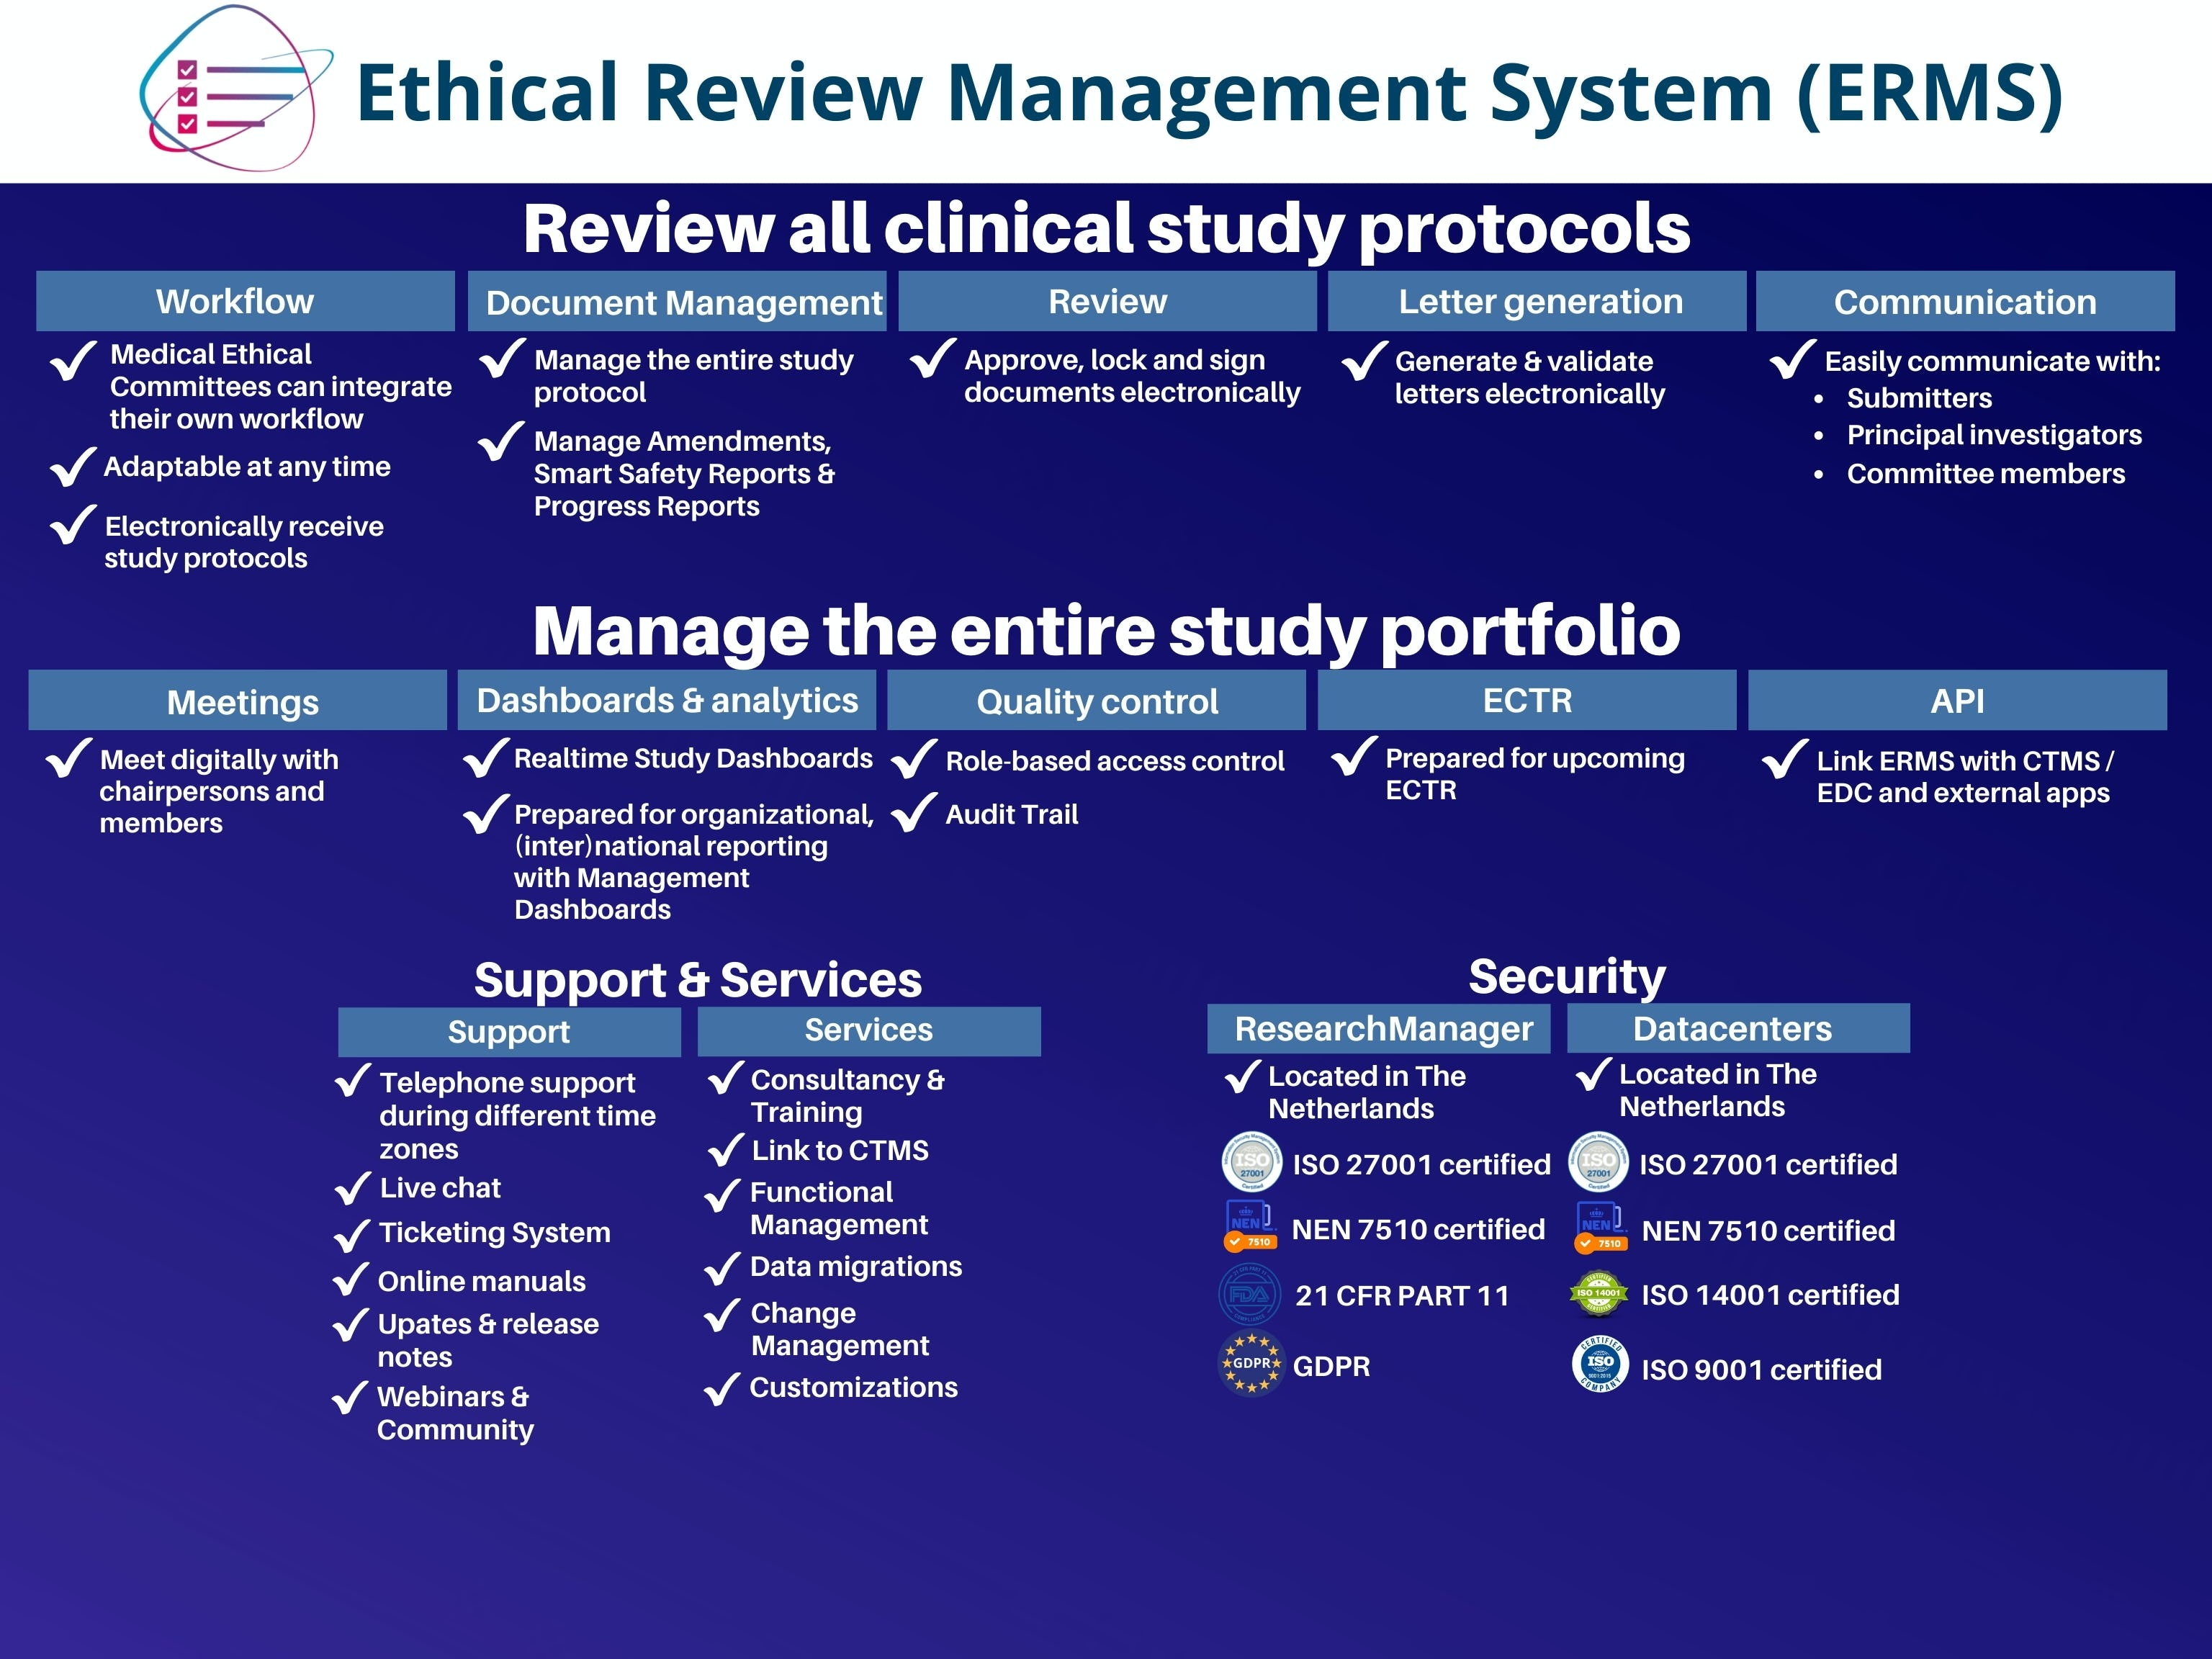 Research Manager Software - 5